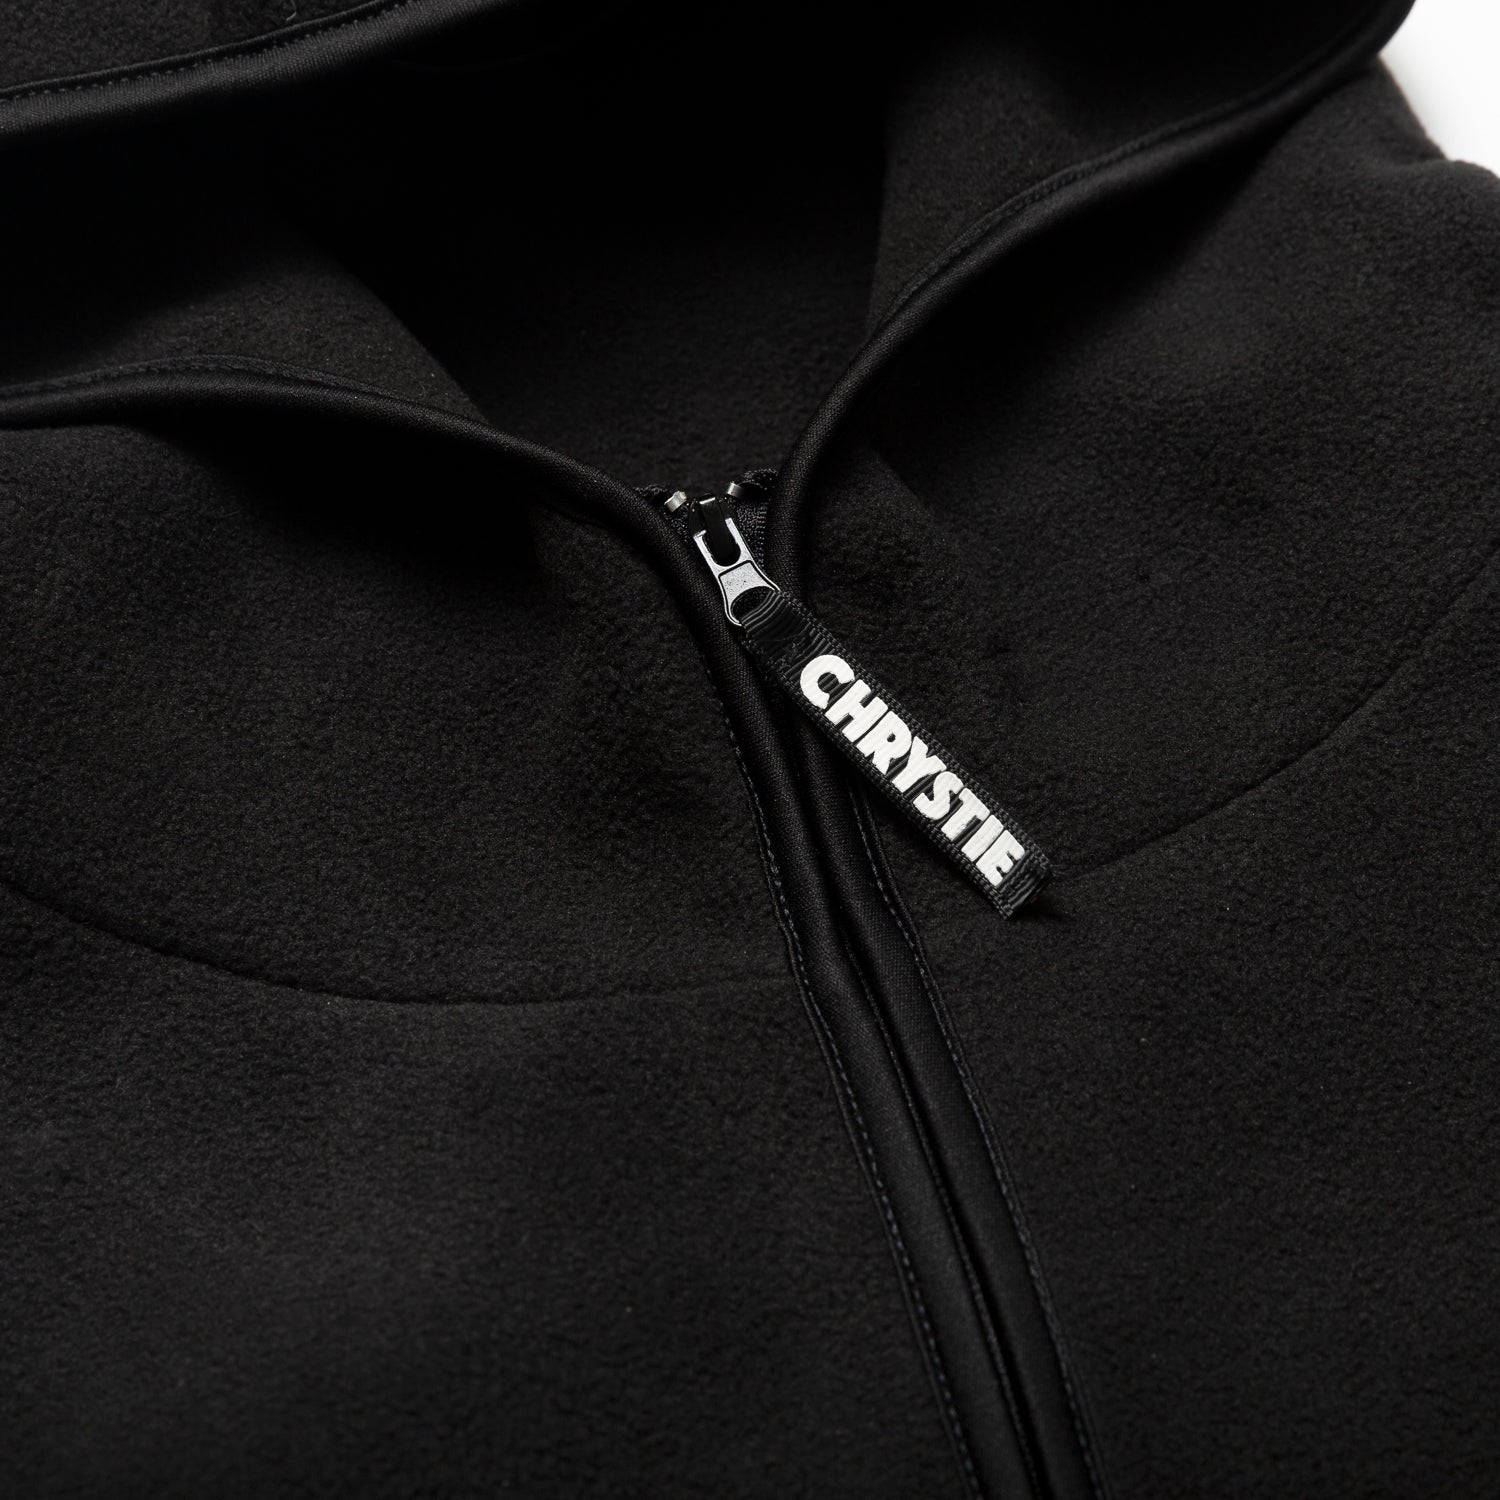 Load image into Gallery viewer, Chrystie OG Logo Polar Fleece Pullover Hoodie_Black